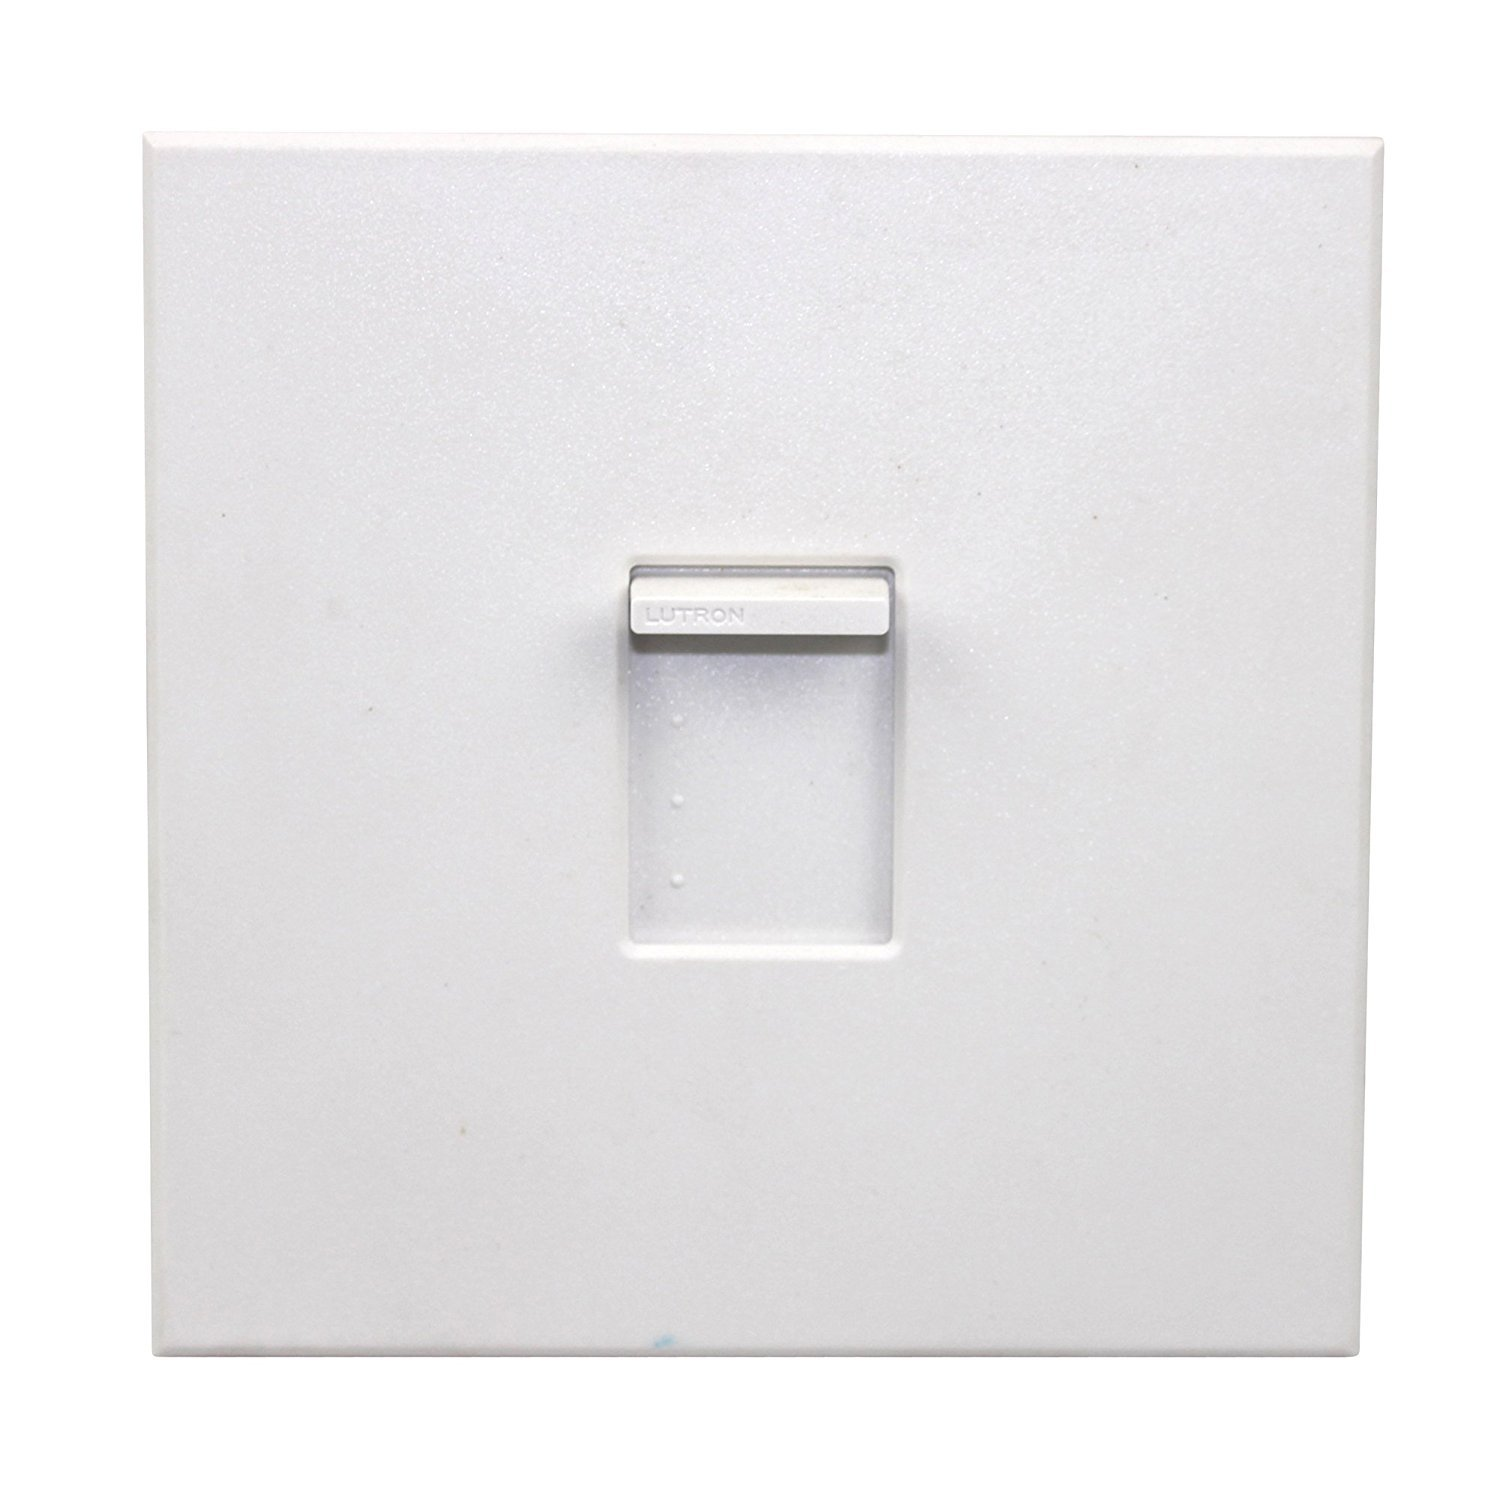 Lutron NTFS-12E-WH Nova T 120V 12A Single Pole Fully Variable Fan Speed Control in White, Matte Finish by Lutron